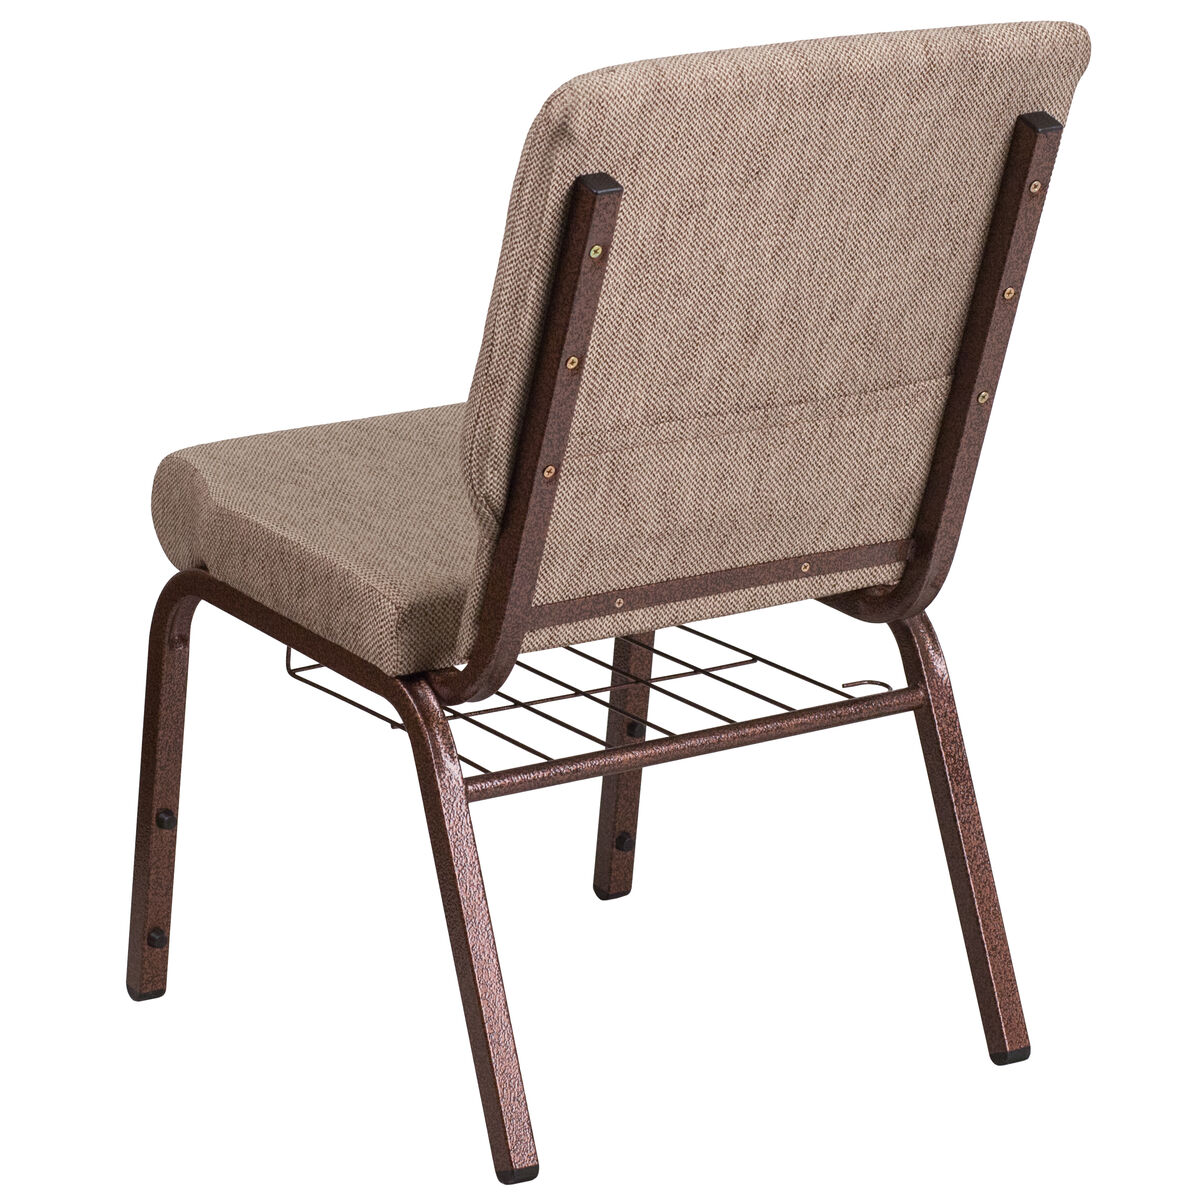 beige fabric church chair fd ch02185 cv bge1 bas gg